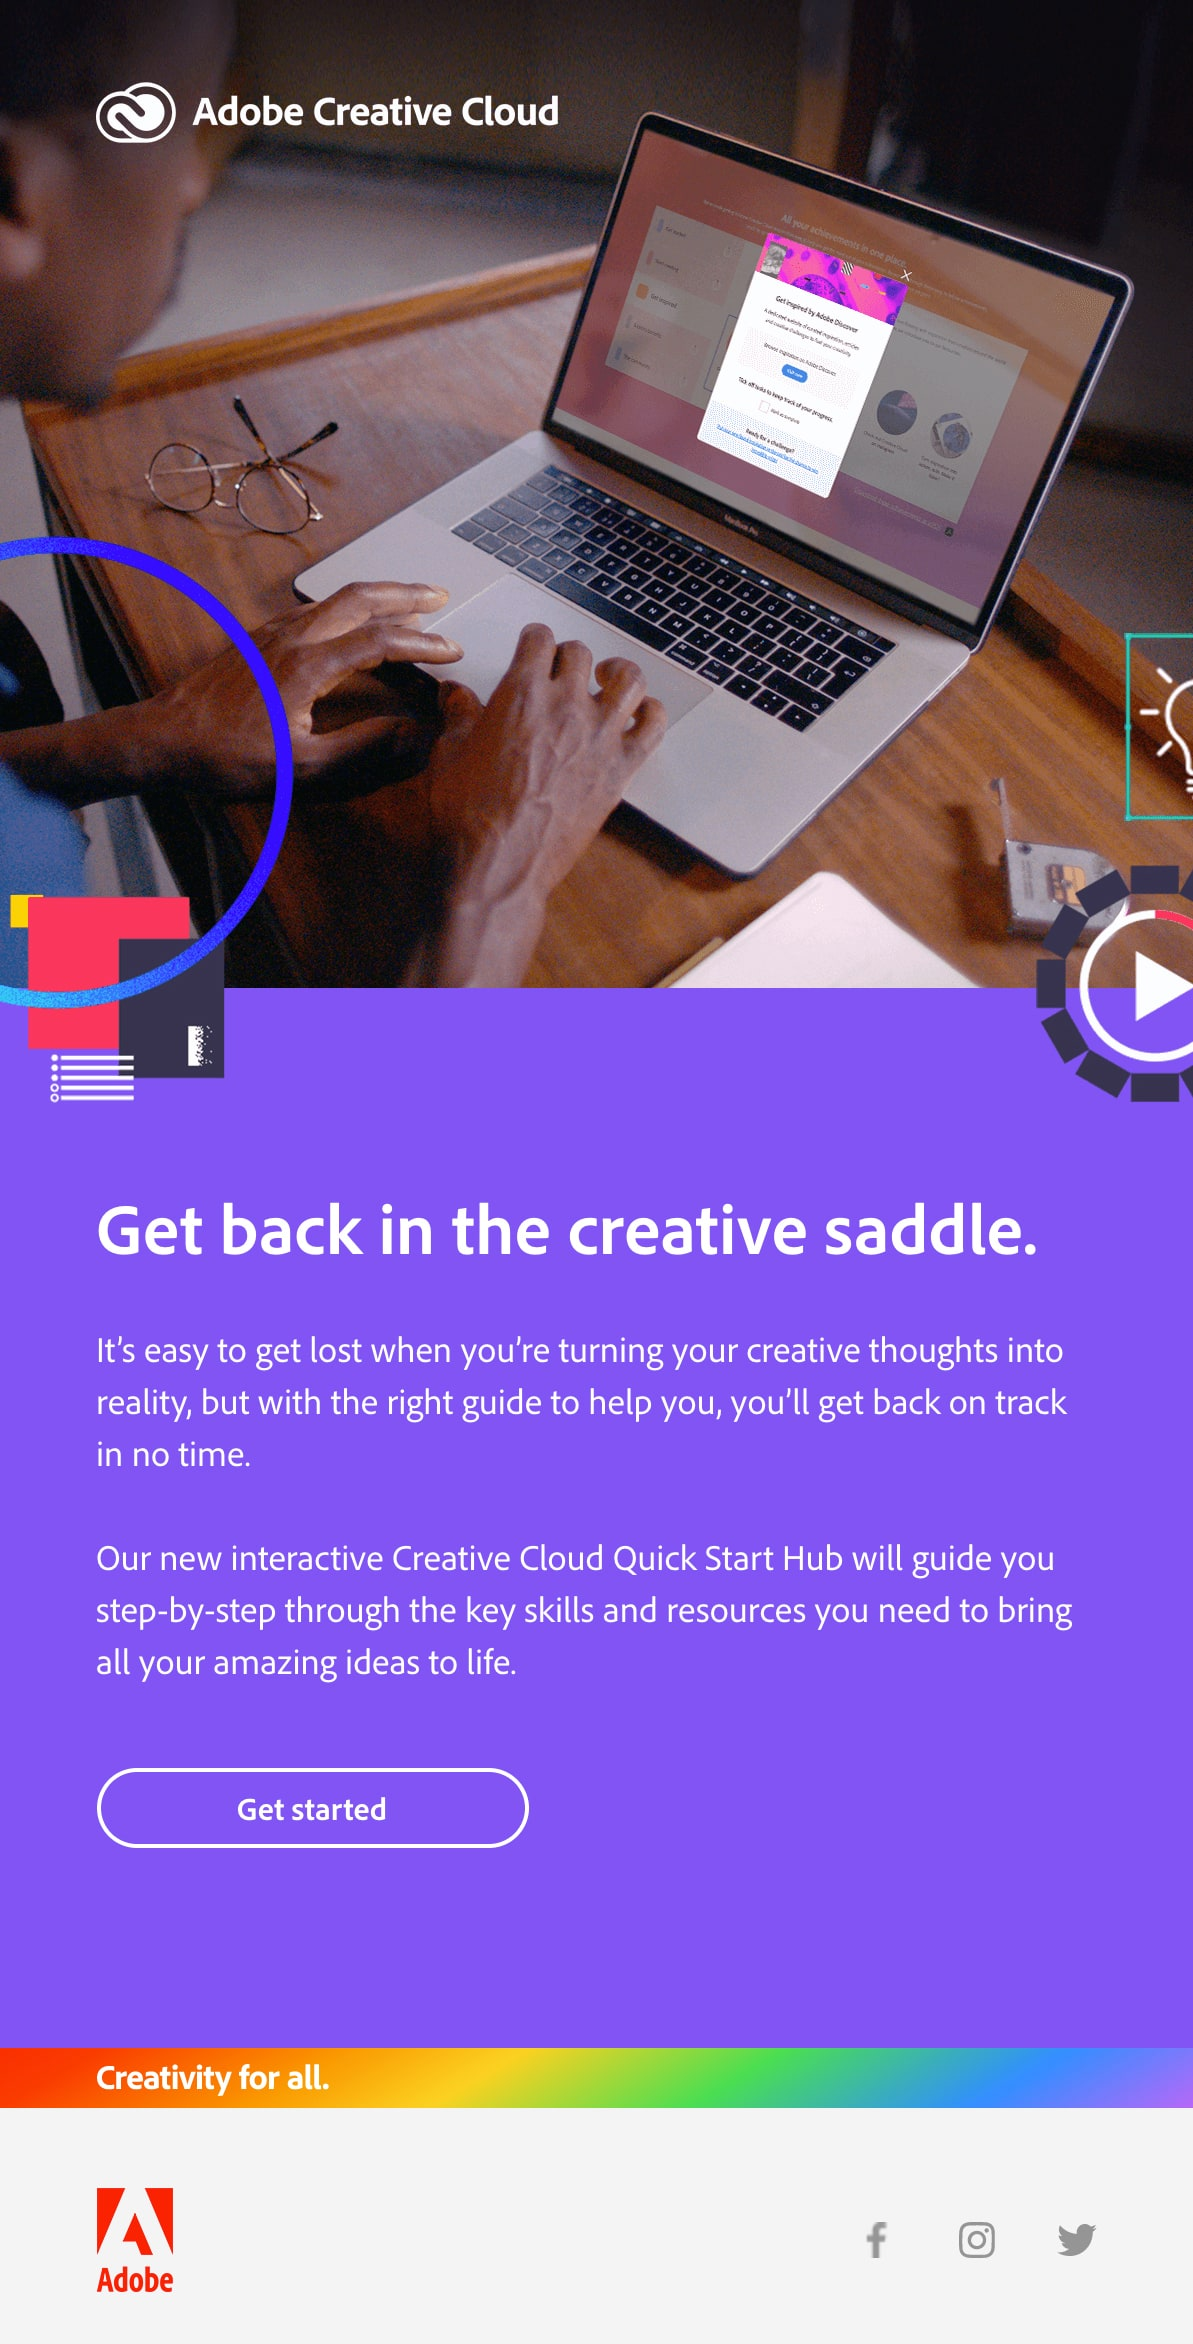 Adobe email with rainbow band in footer to show creativity for all